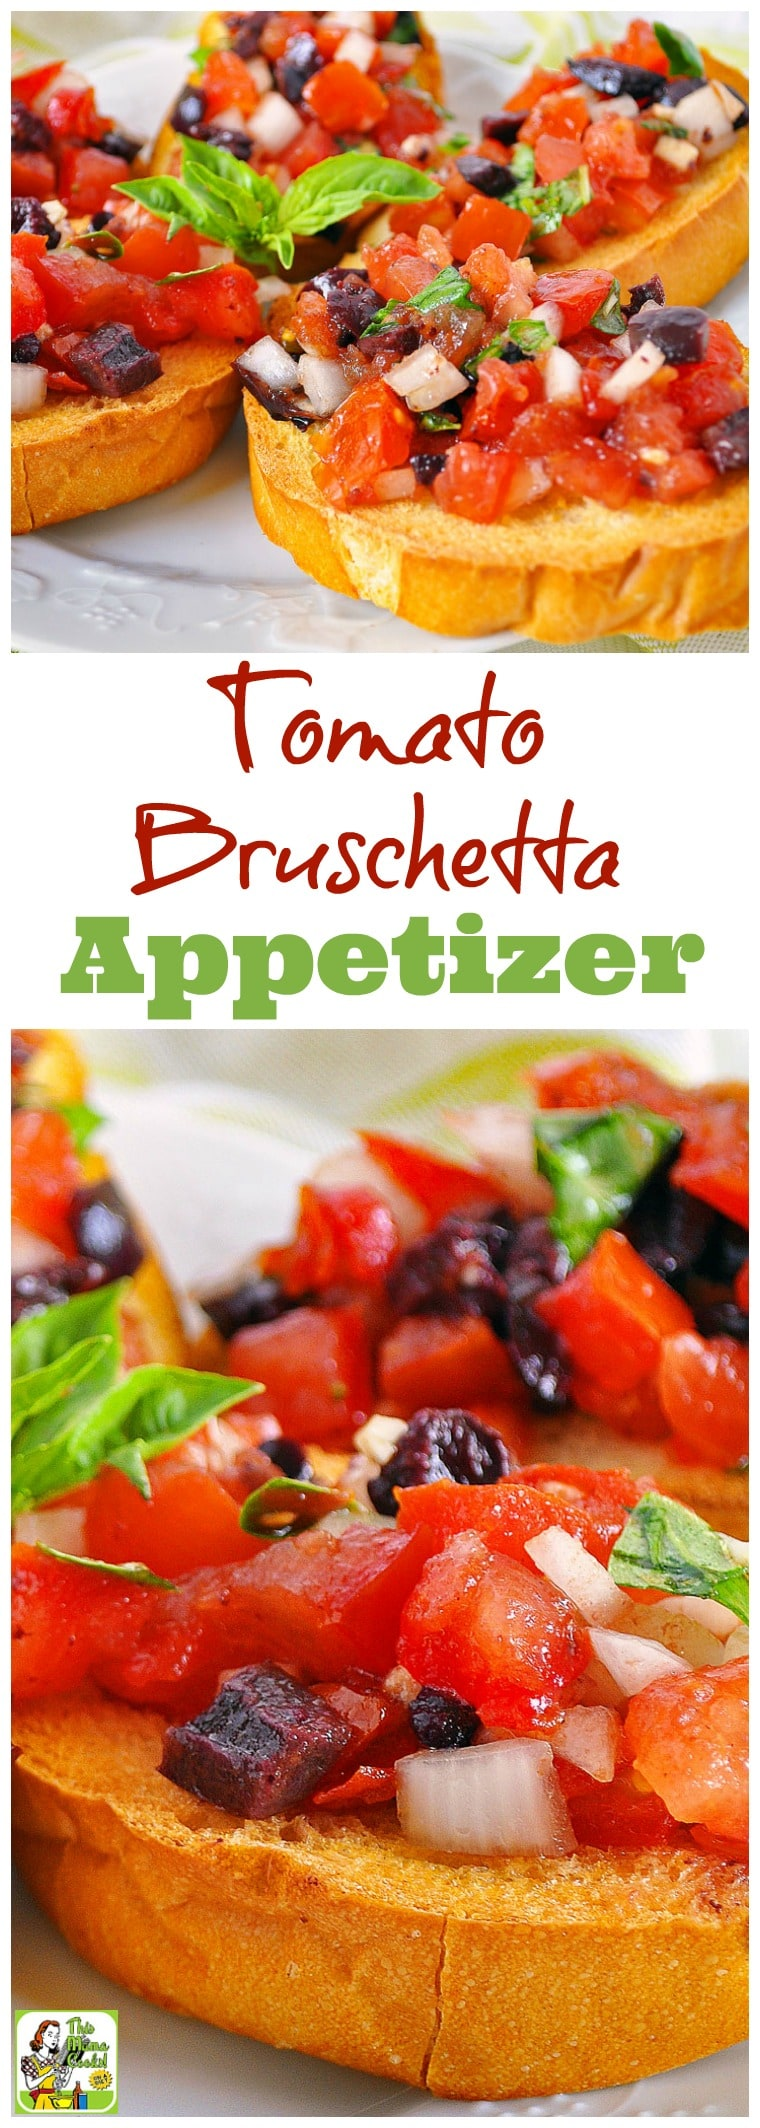 Need a delicious and healthy appetizer recipe for your next party? Try this easy tomato bruschetta appetizer recipe! Comes with a gluten free option to make with gluten free crackers or bread. Diabetic friendly and a healthy and delicious party snack! #recipes #easy #recipeoftheday #glutenfree #easyrecipe #easyrecipe #snack #partyfood #appetizers #appetizerseasy